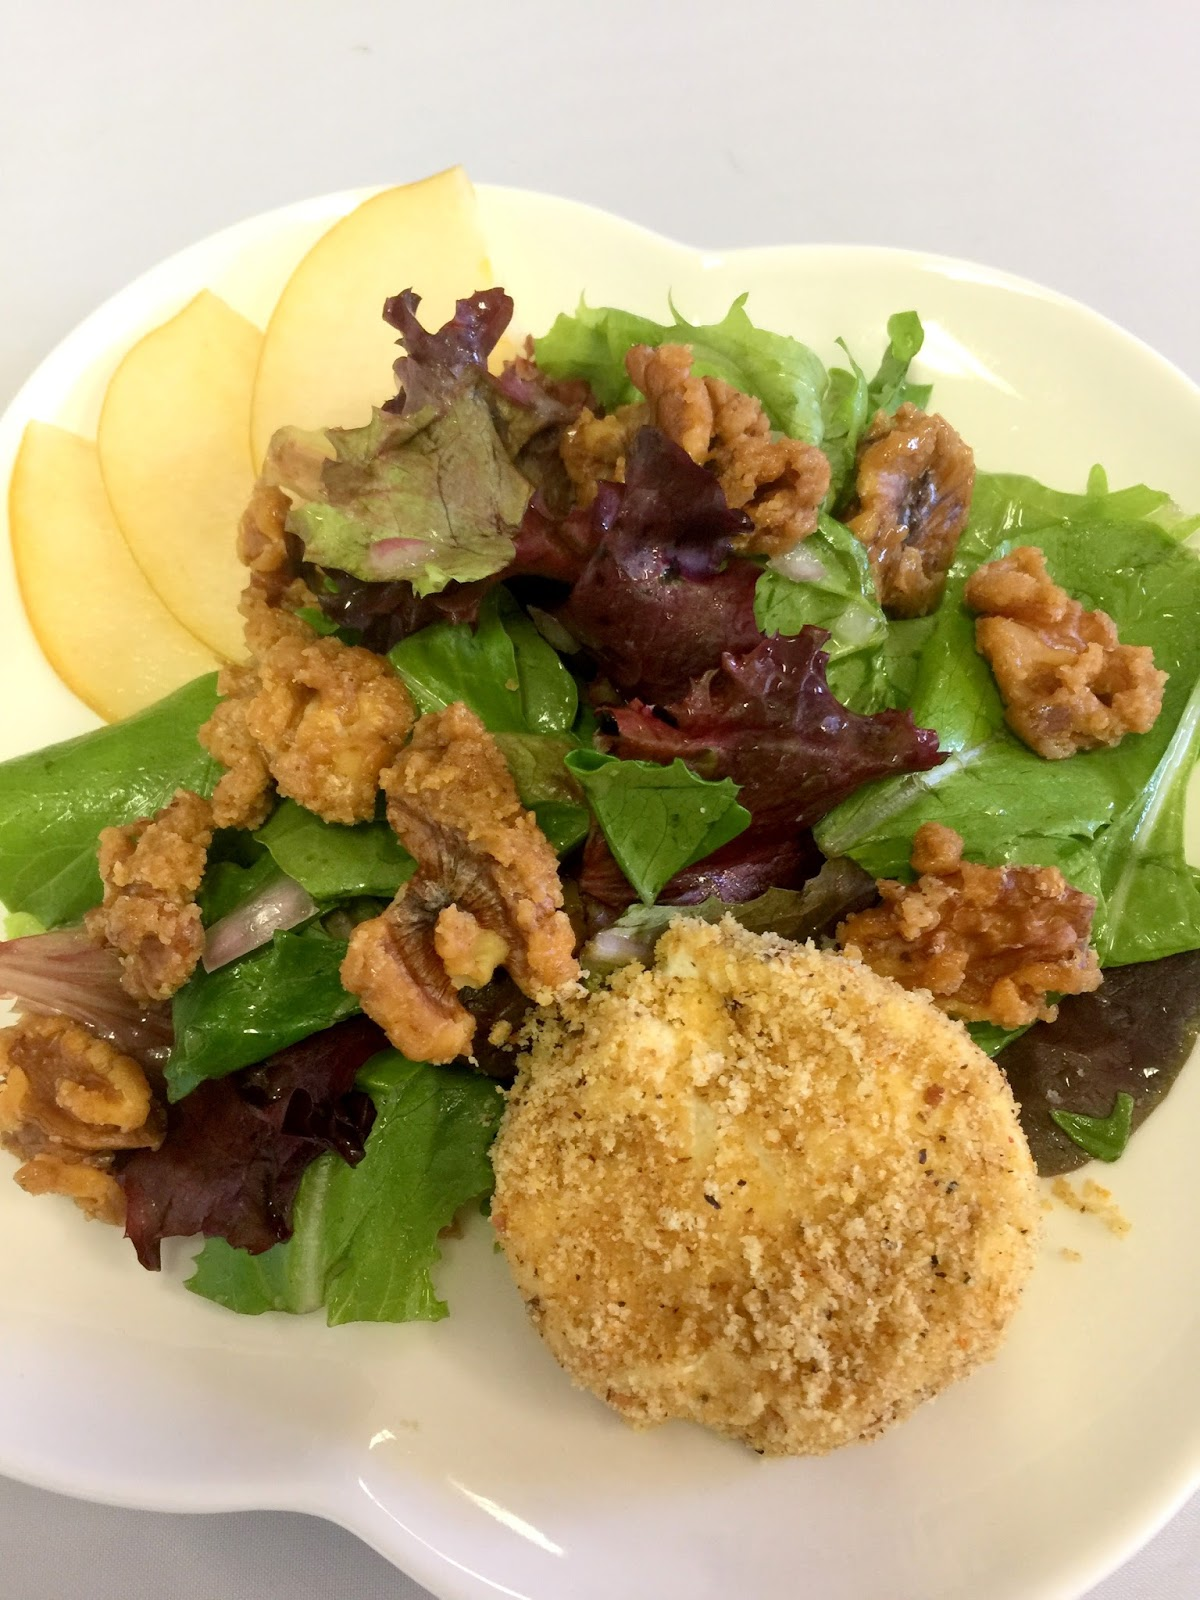 ... Warm Goat Cheese Salad with Asian Pears and Honey Walnut Vinaigrette